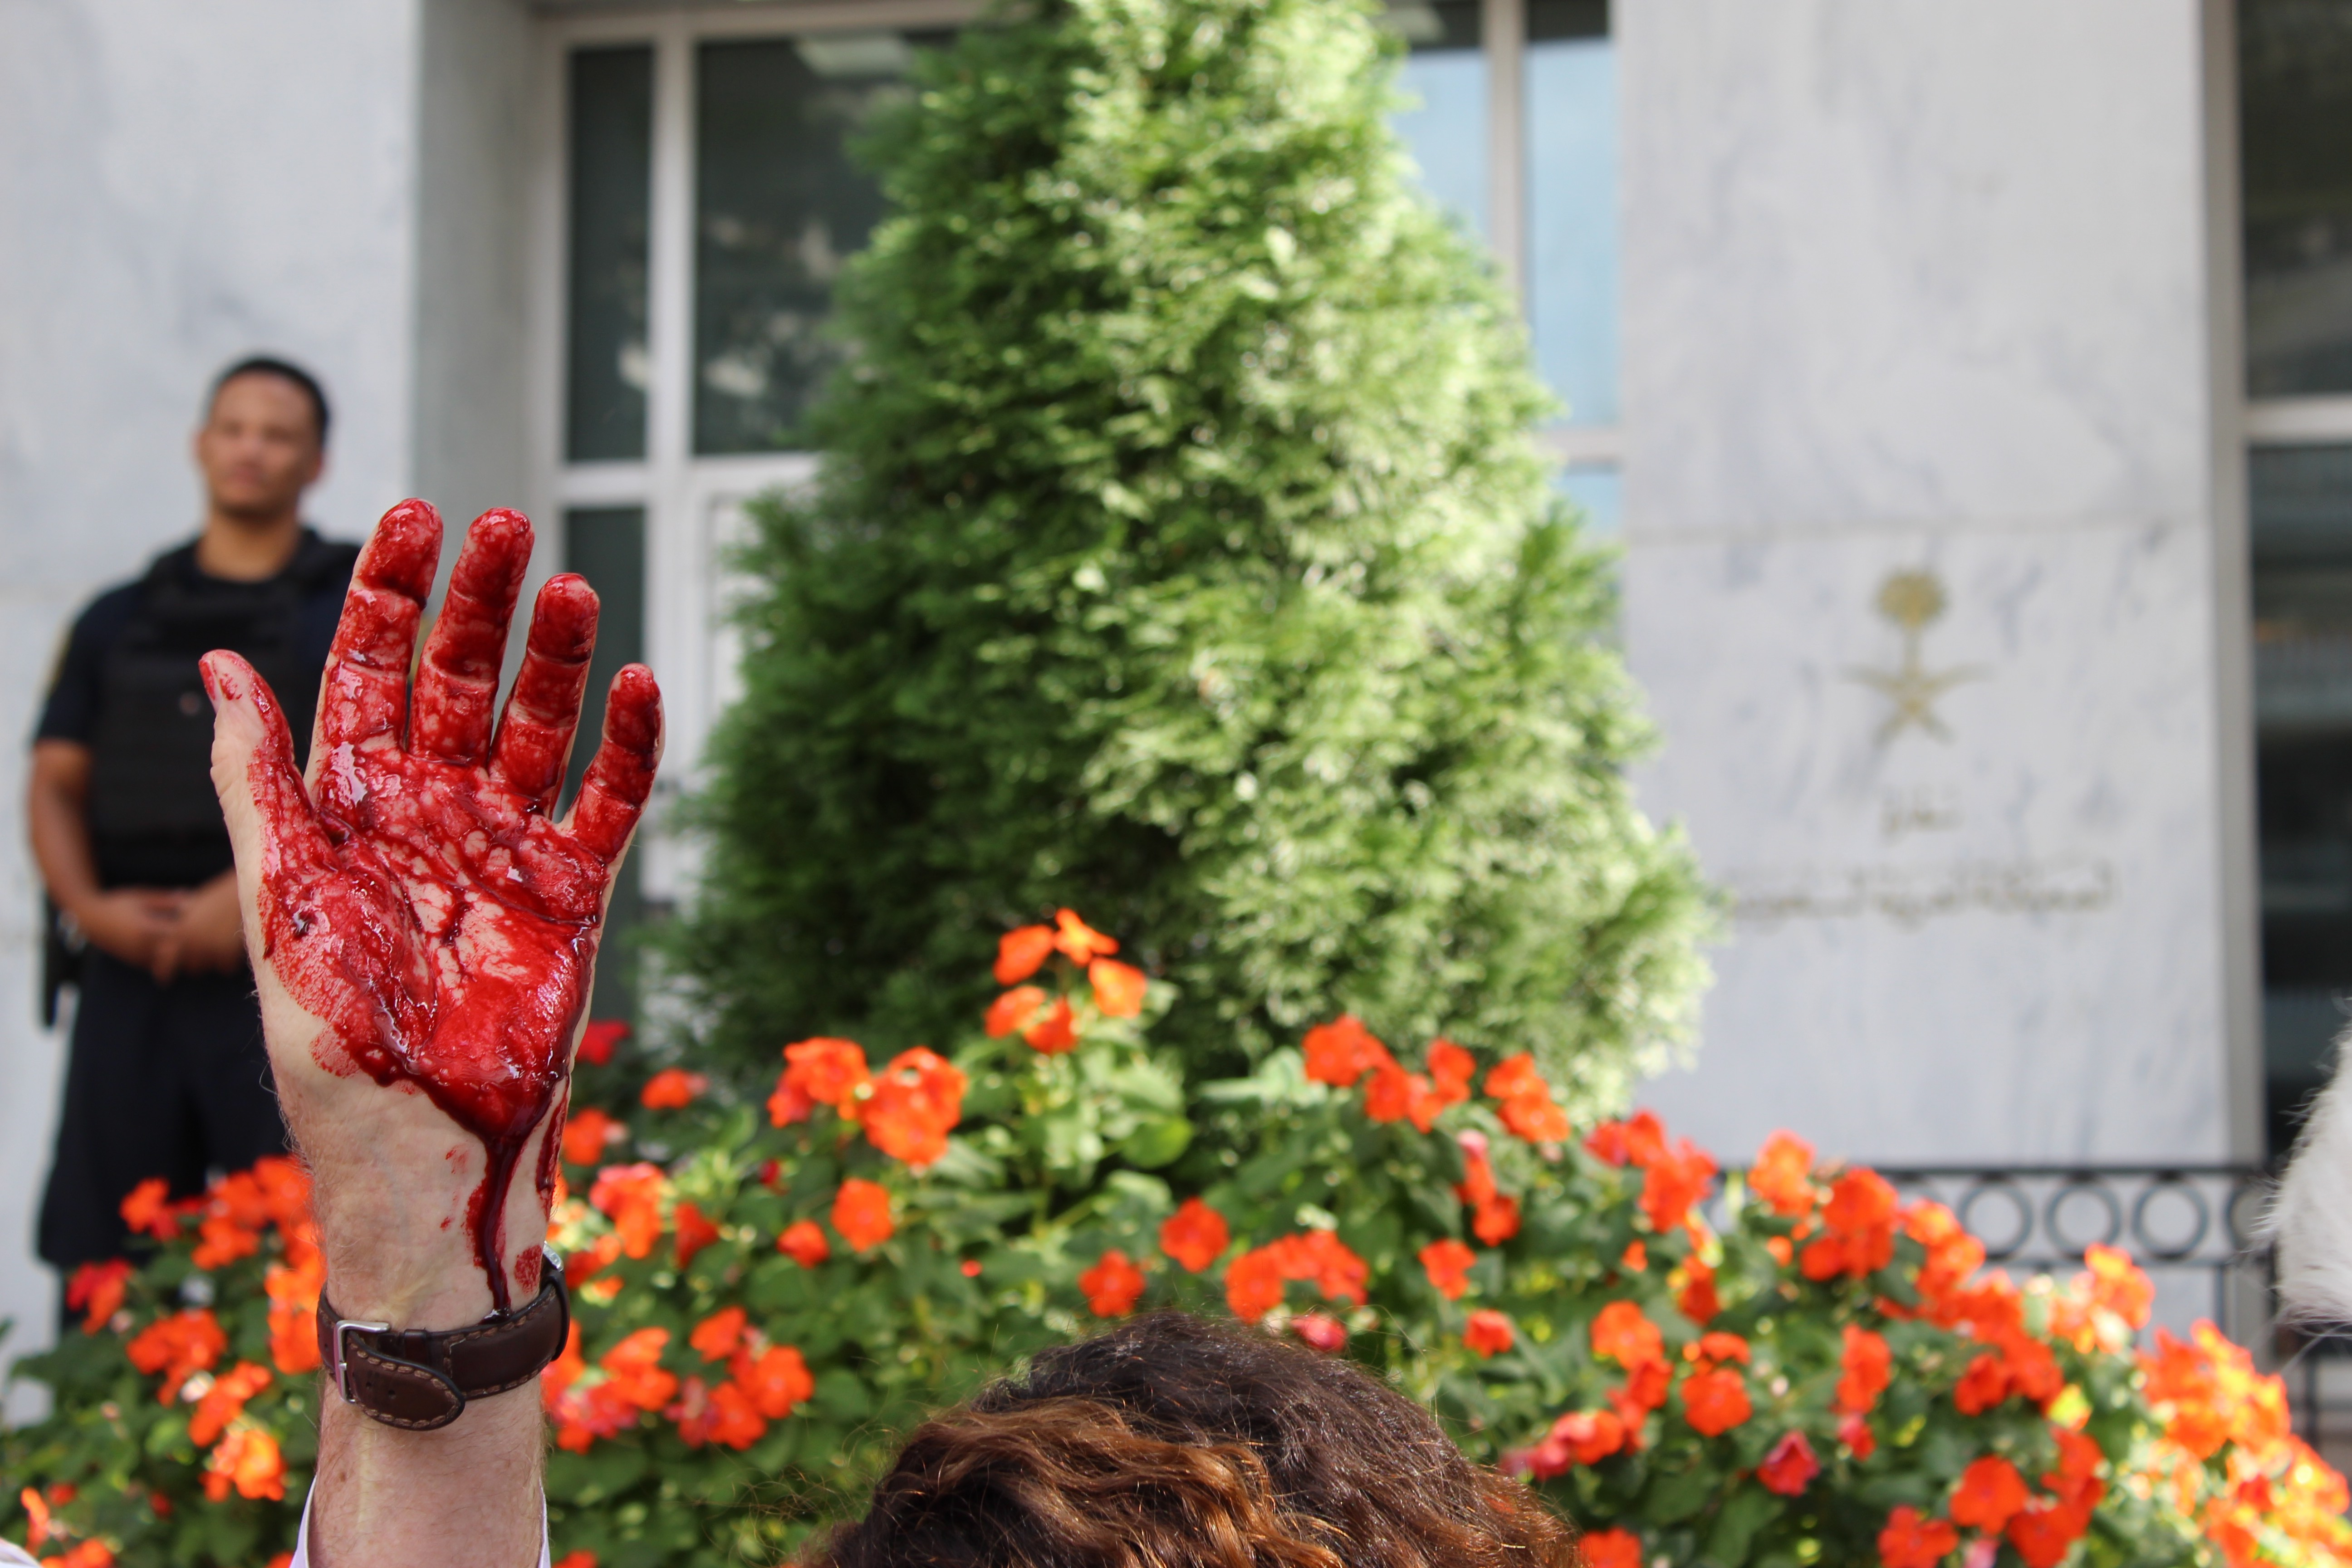 One protester dressed up like Saudi's MBS, covering his hands in blood (MEE/Sheren Khalel)